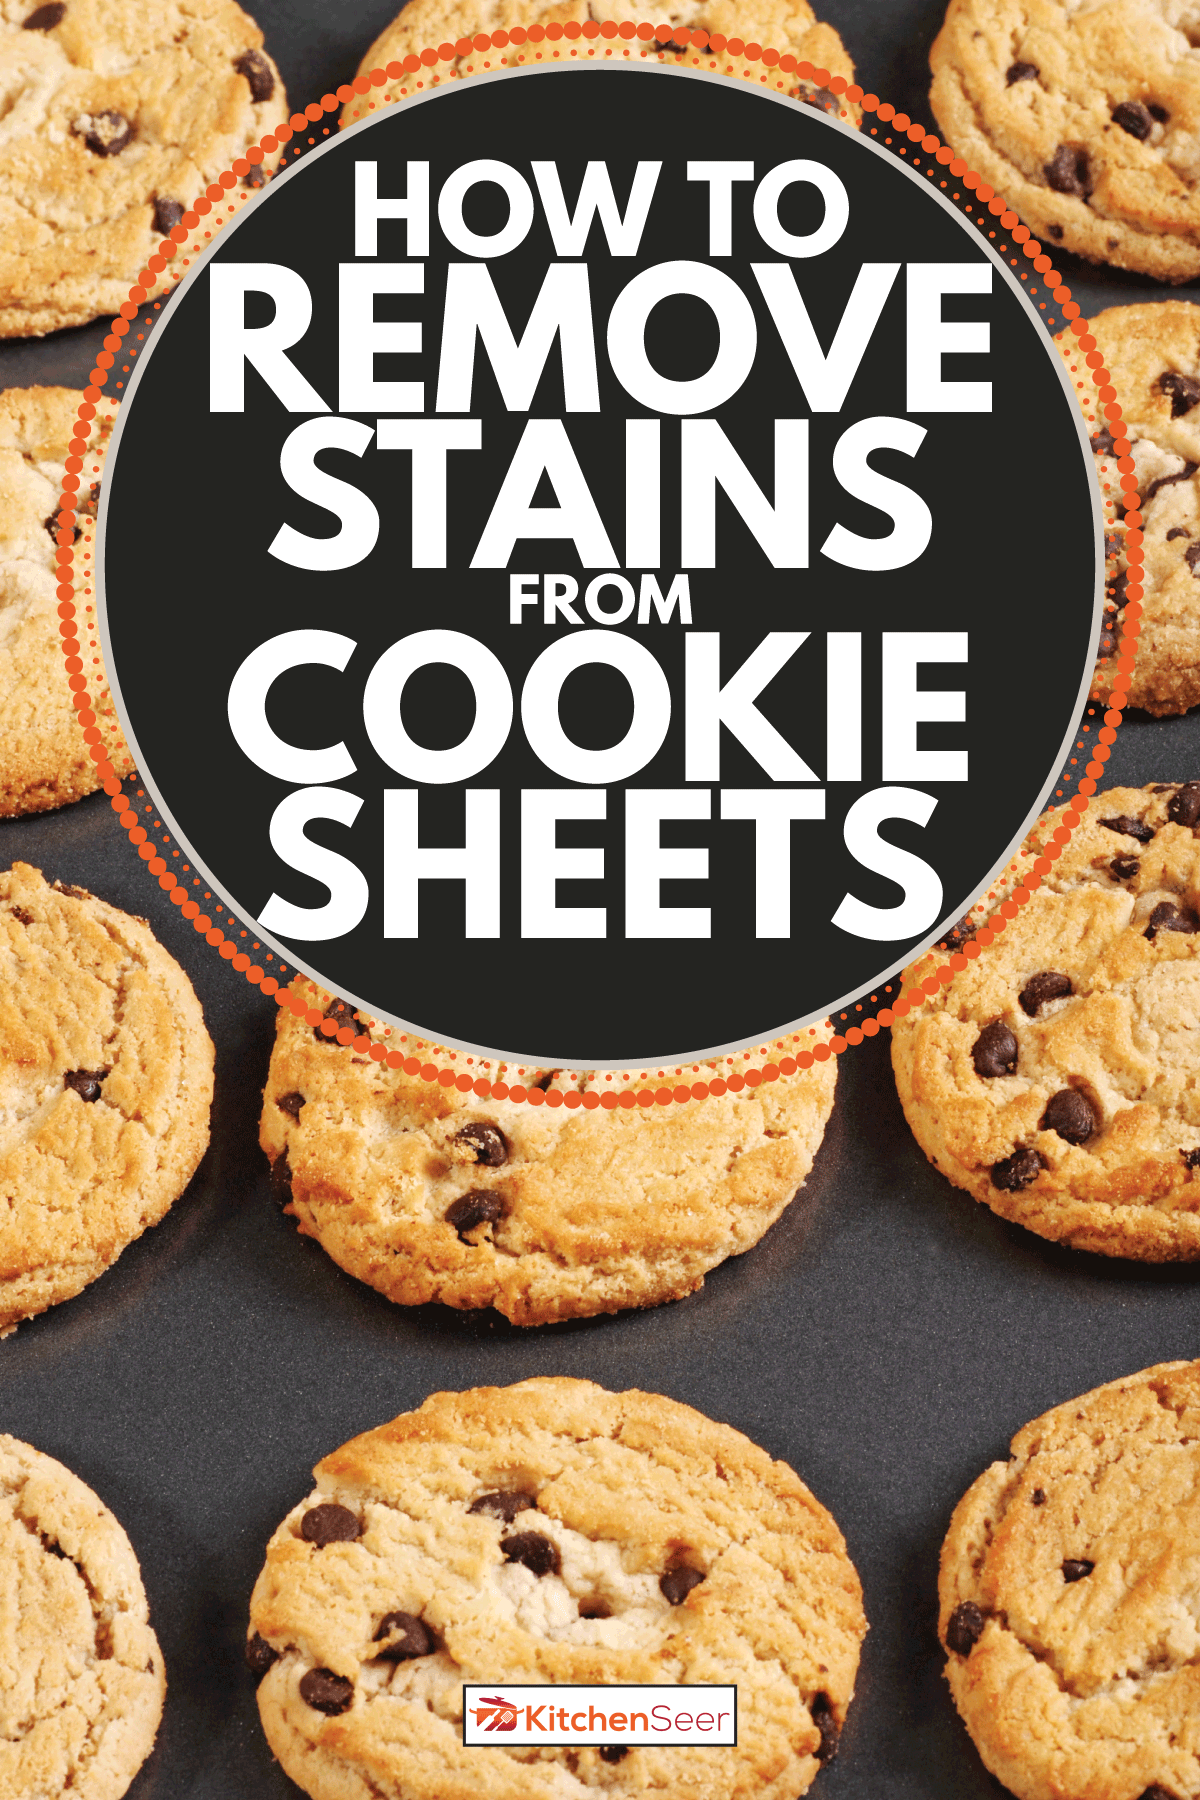 Chocolate chip cookies on baking sheet. How To Remove Stains From Cookie Sheets